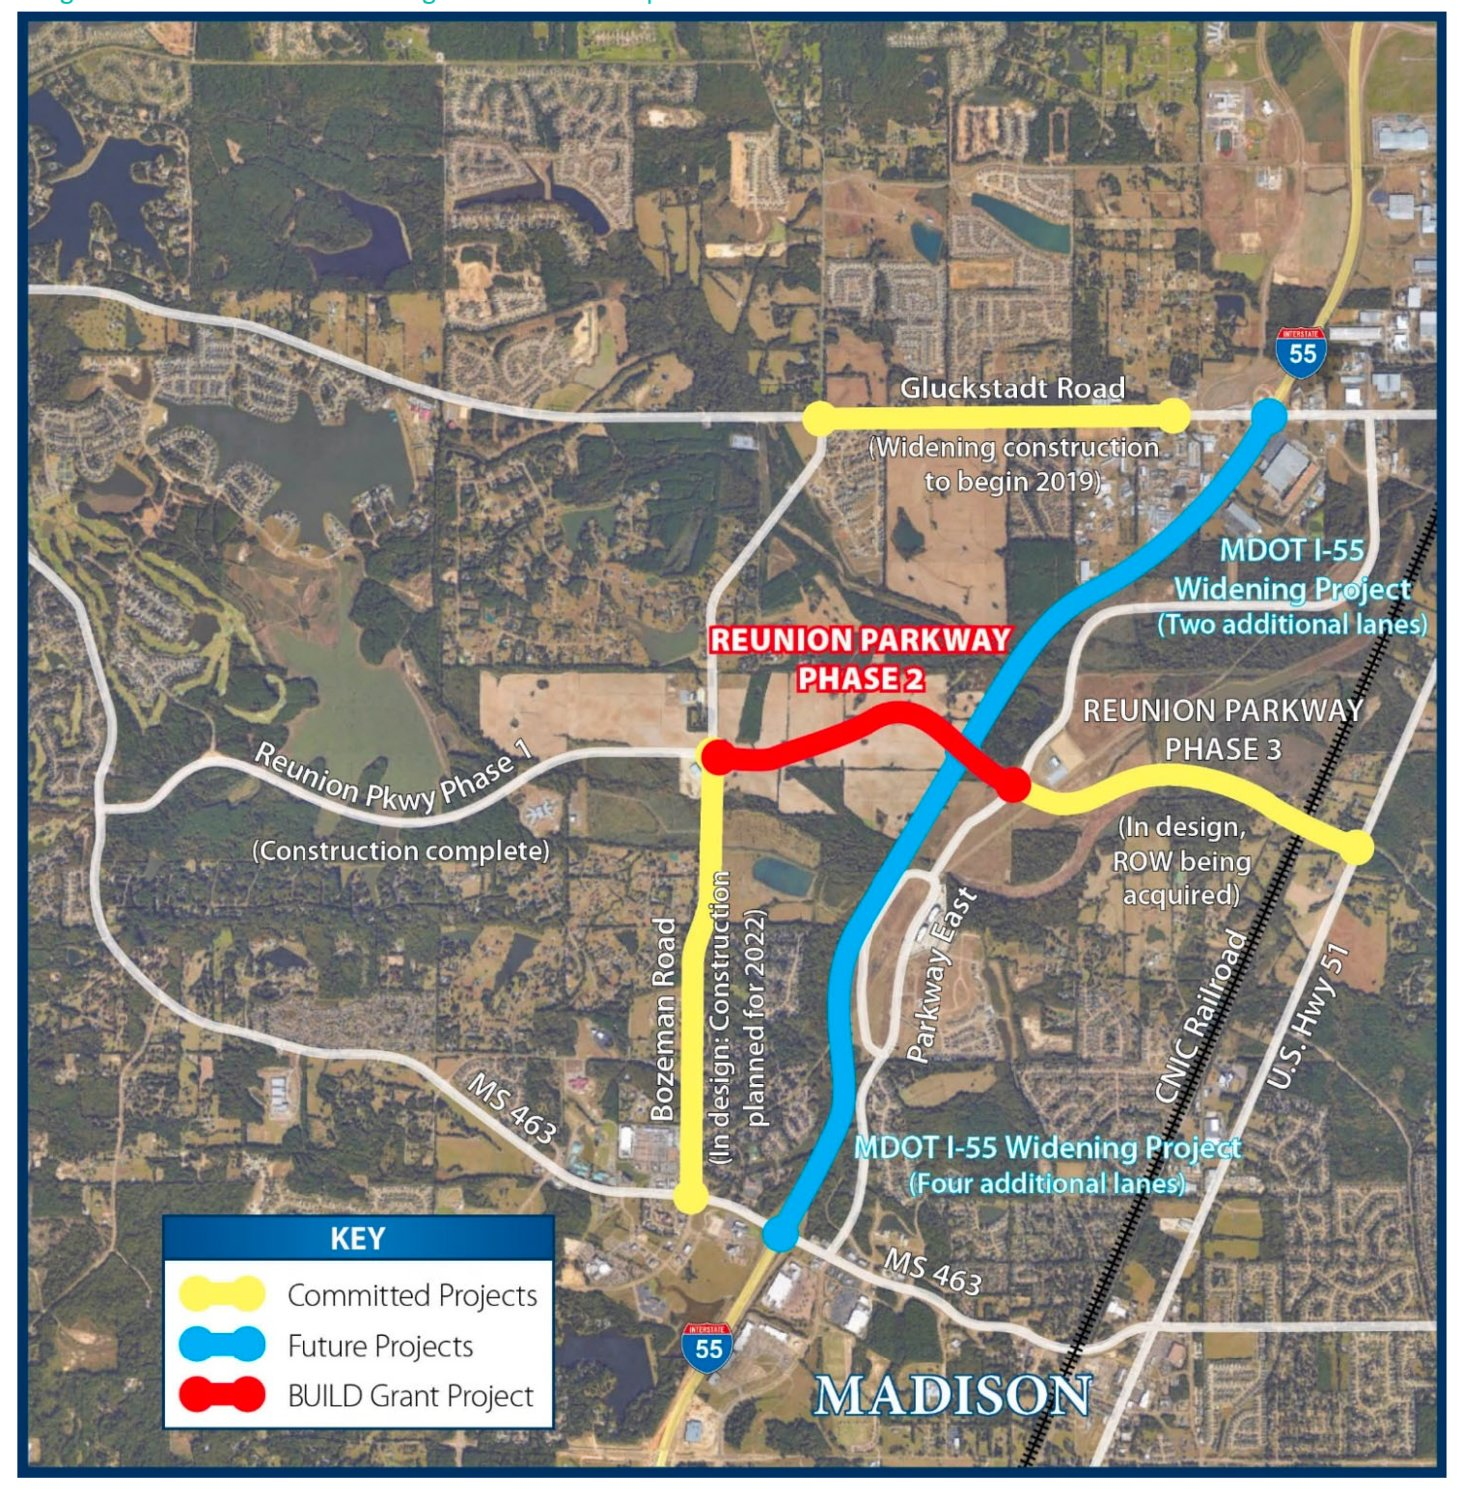 This map shows future traffic projects and some in the works, including Reunion Phase II and Reunion Phase III.